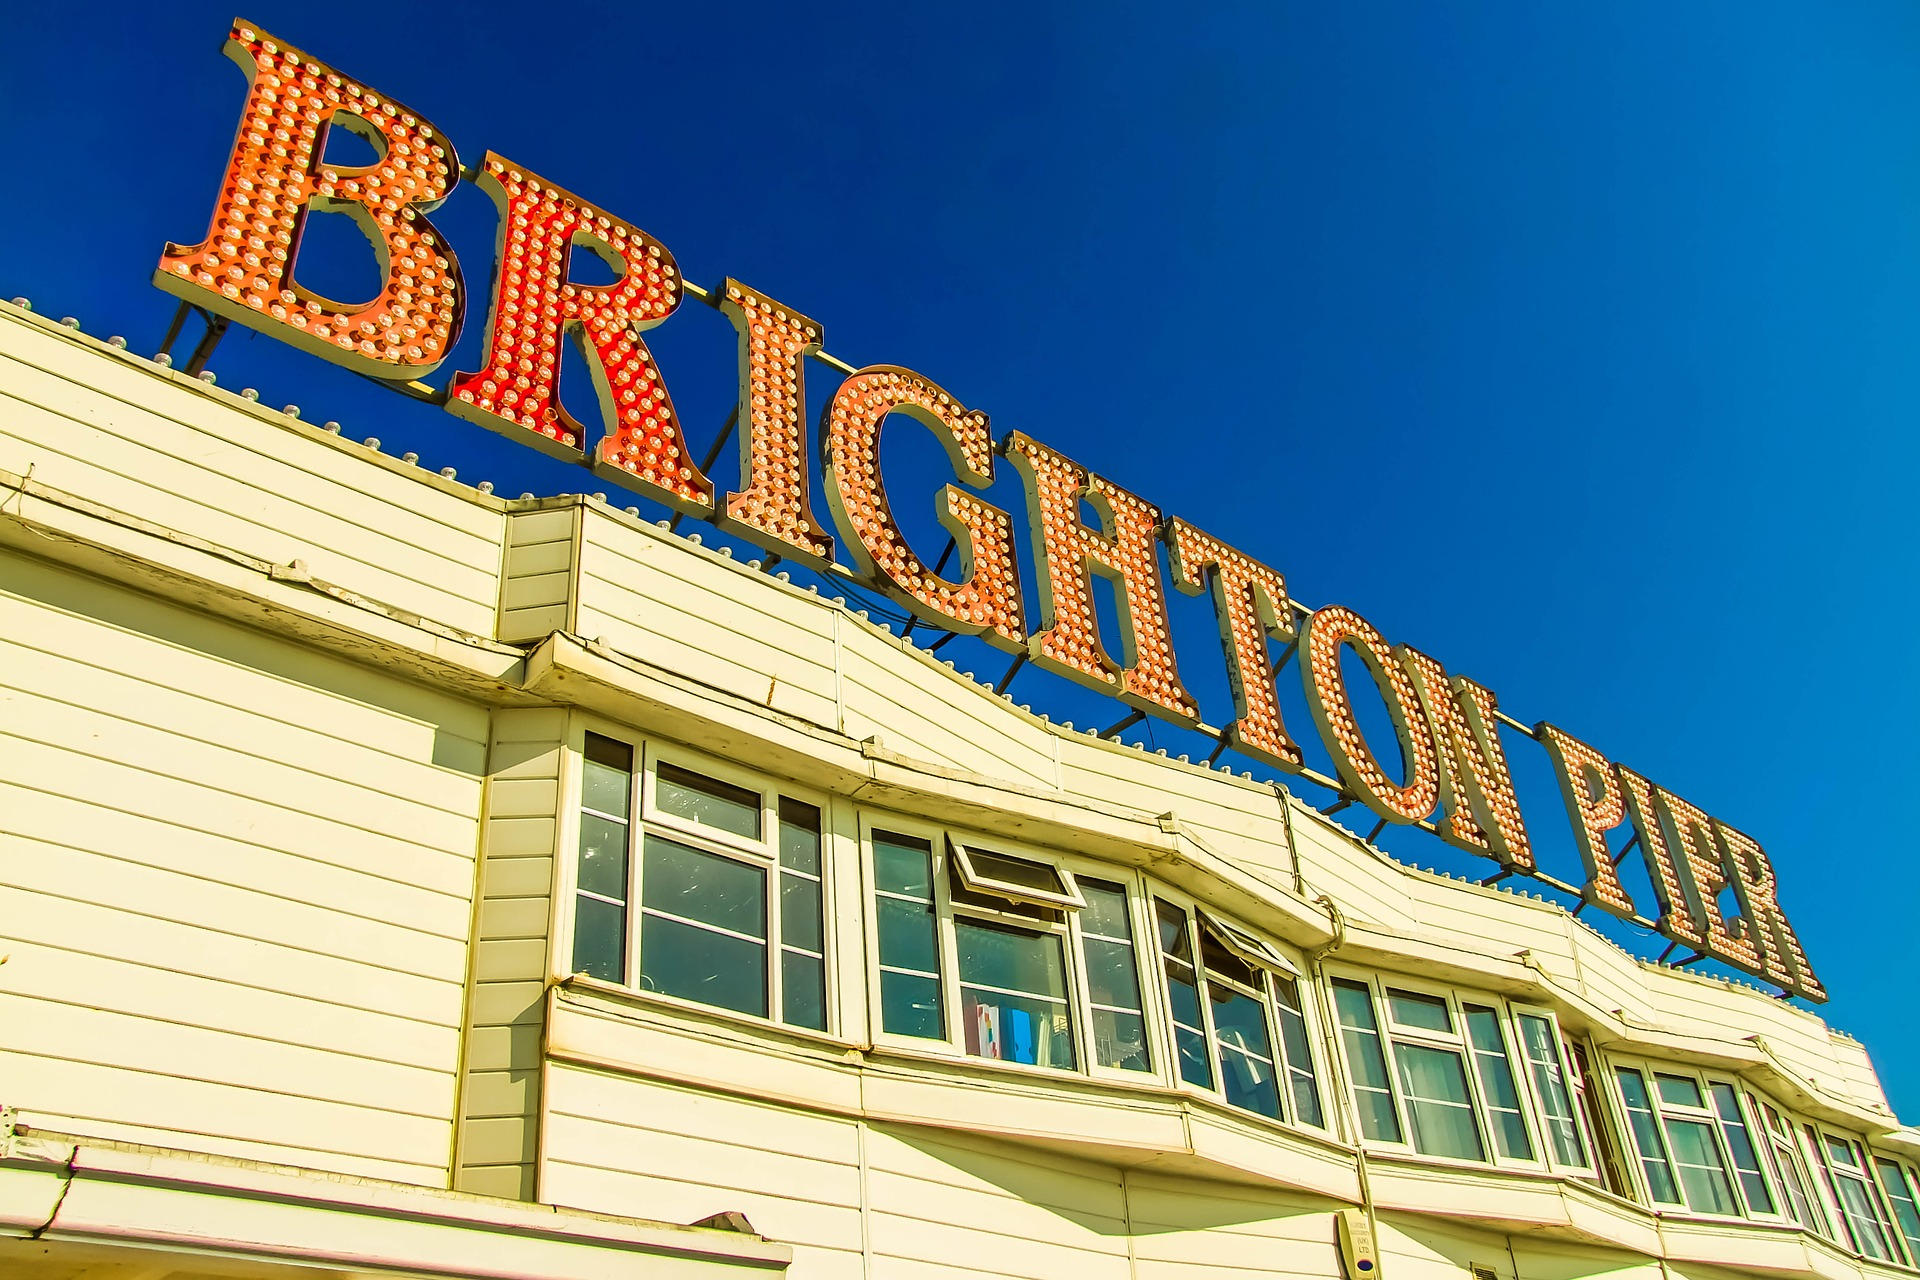 The story behind Brighton's iconic buildings